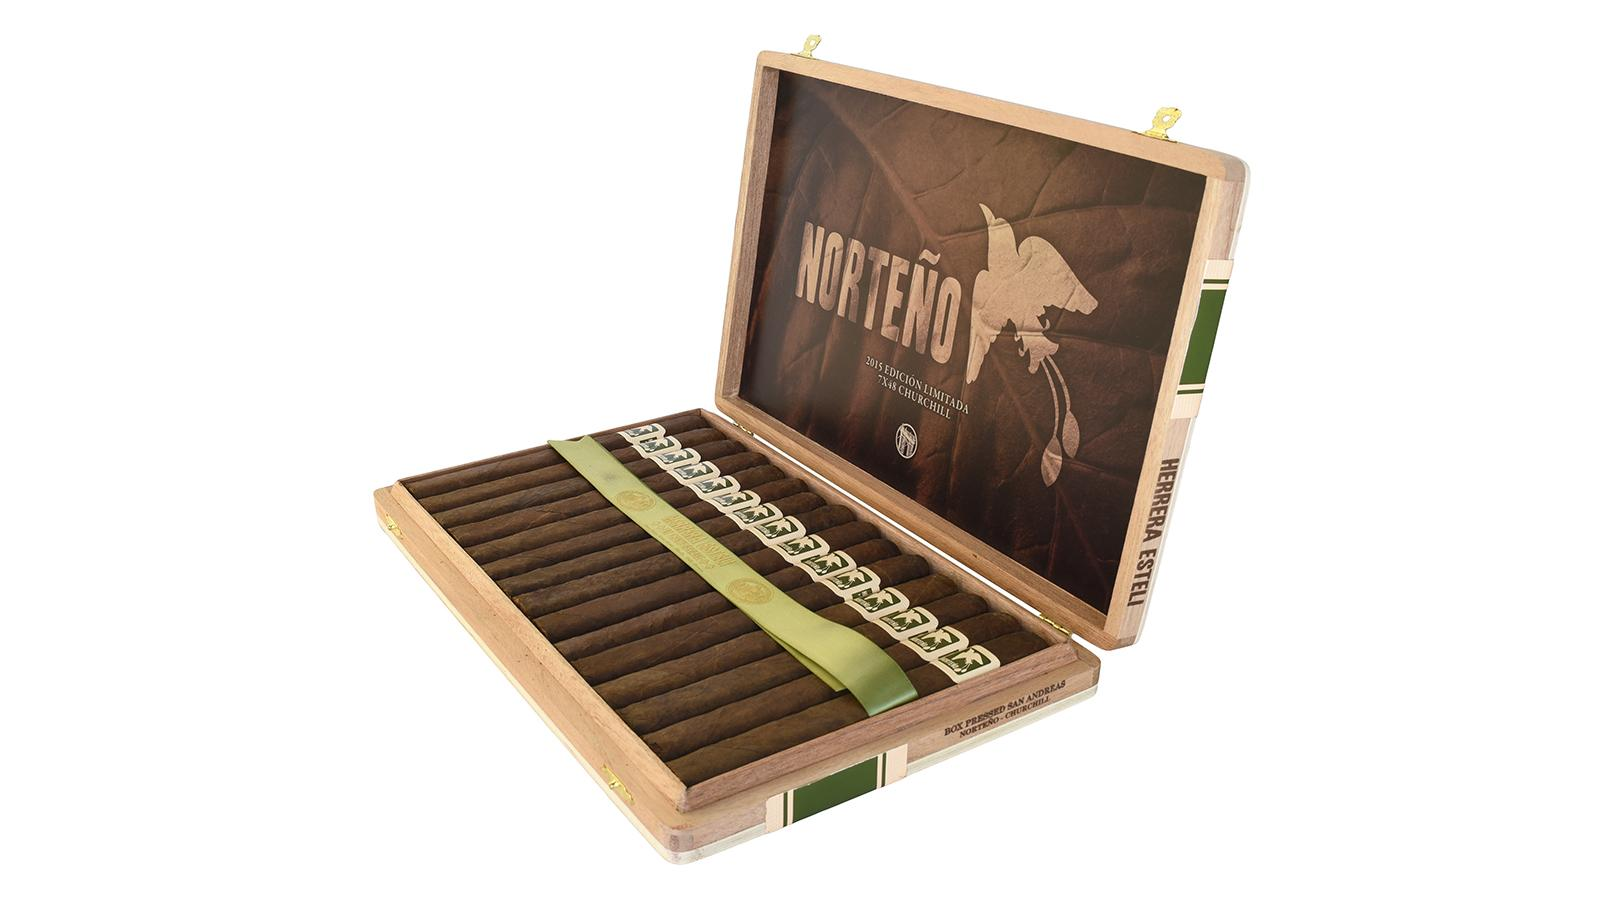 Norteño Edicion Limitada Churchill Returns to Market